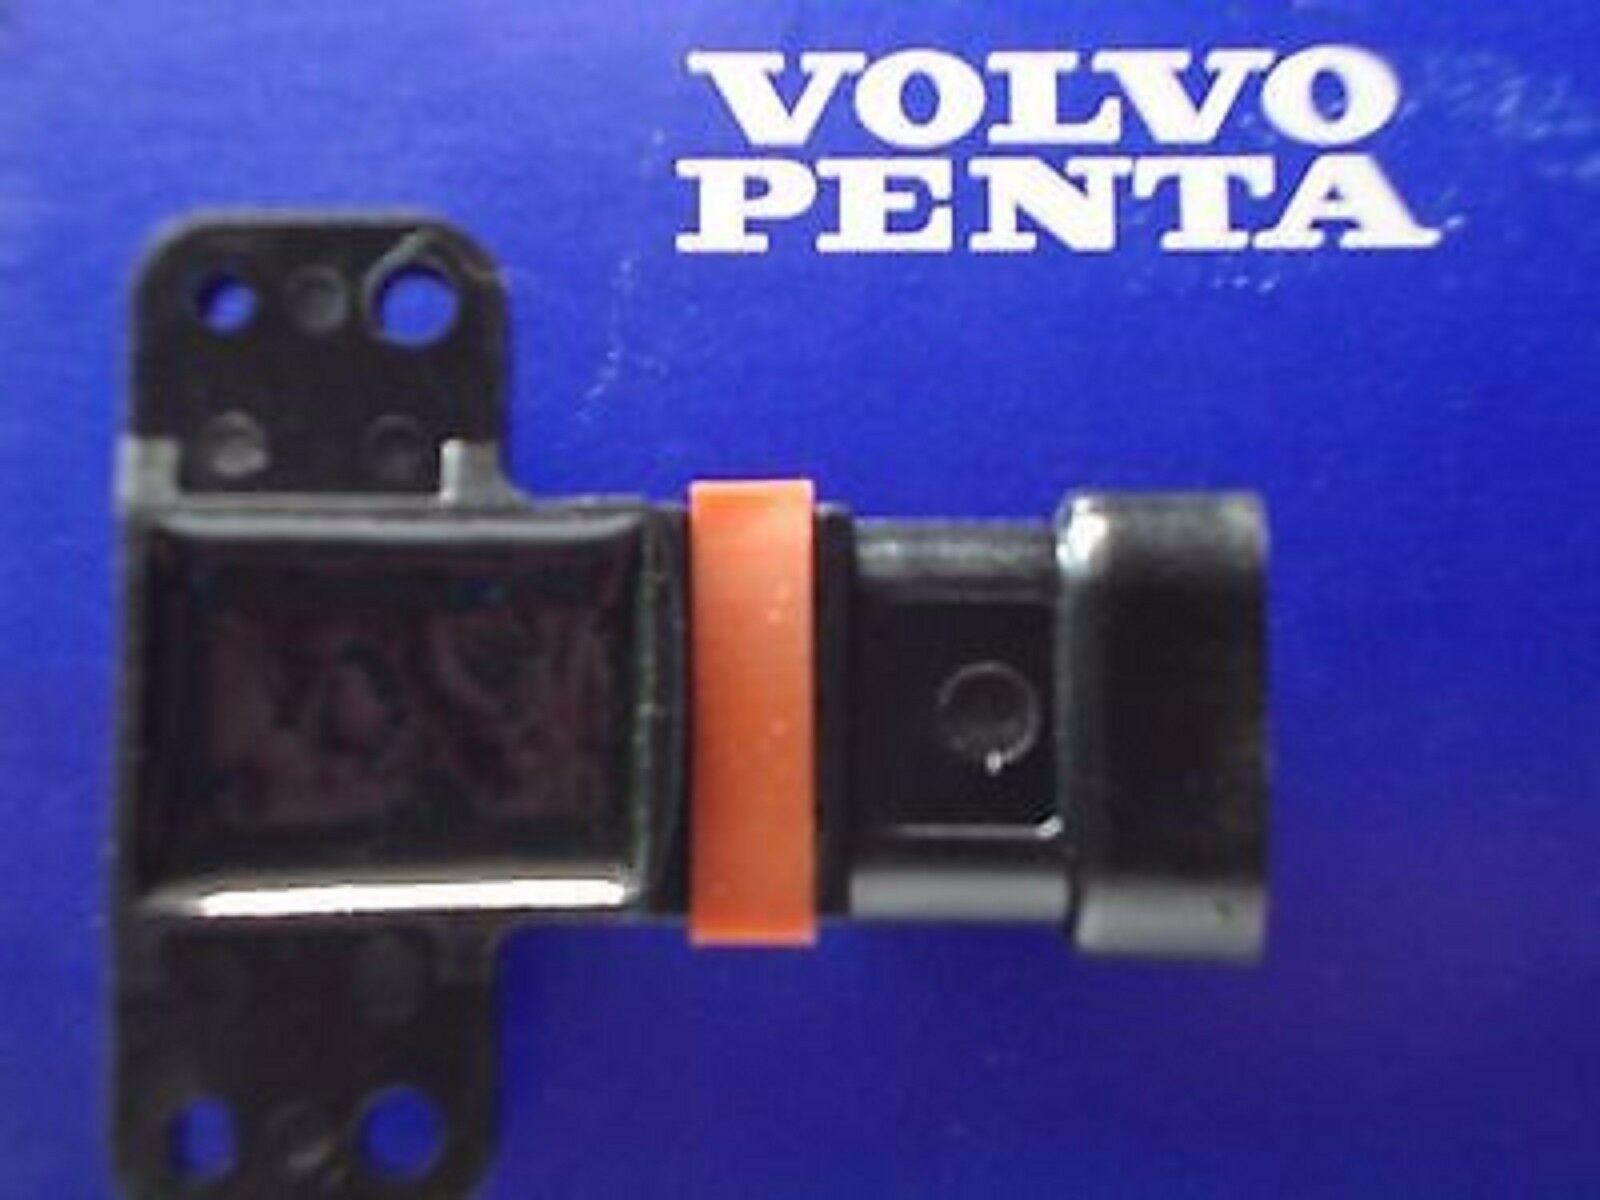 Volvo Penta 3863130 Camshaft Position Sensor 1 of 2Only 3 available ...